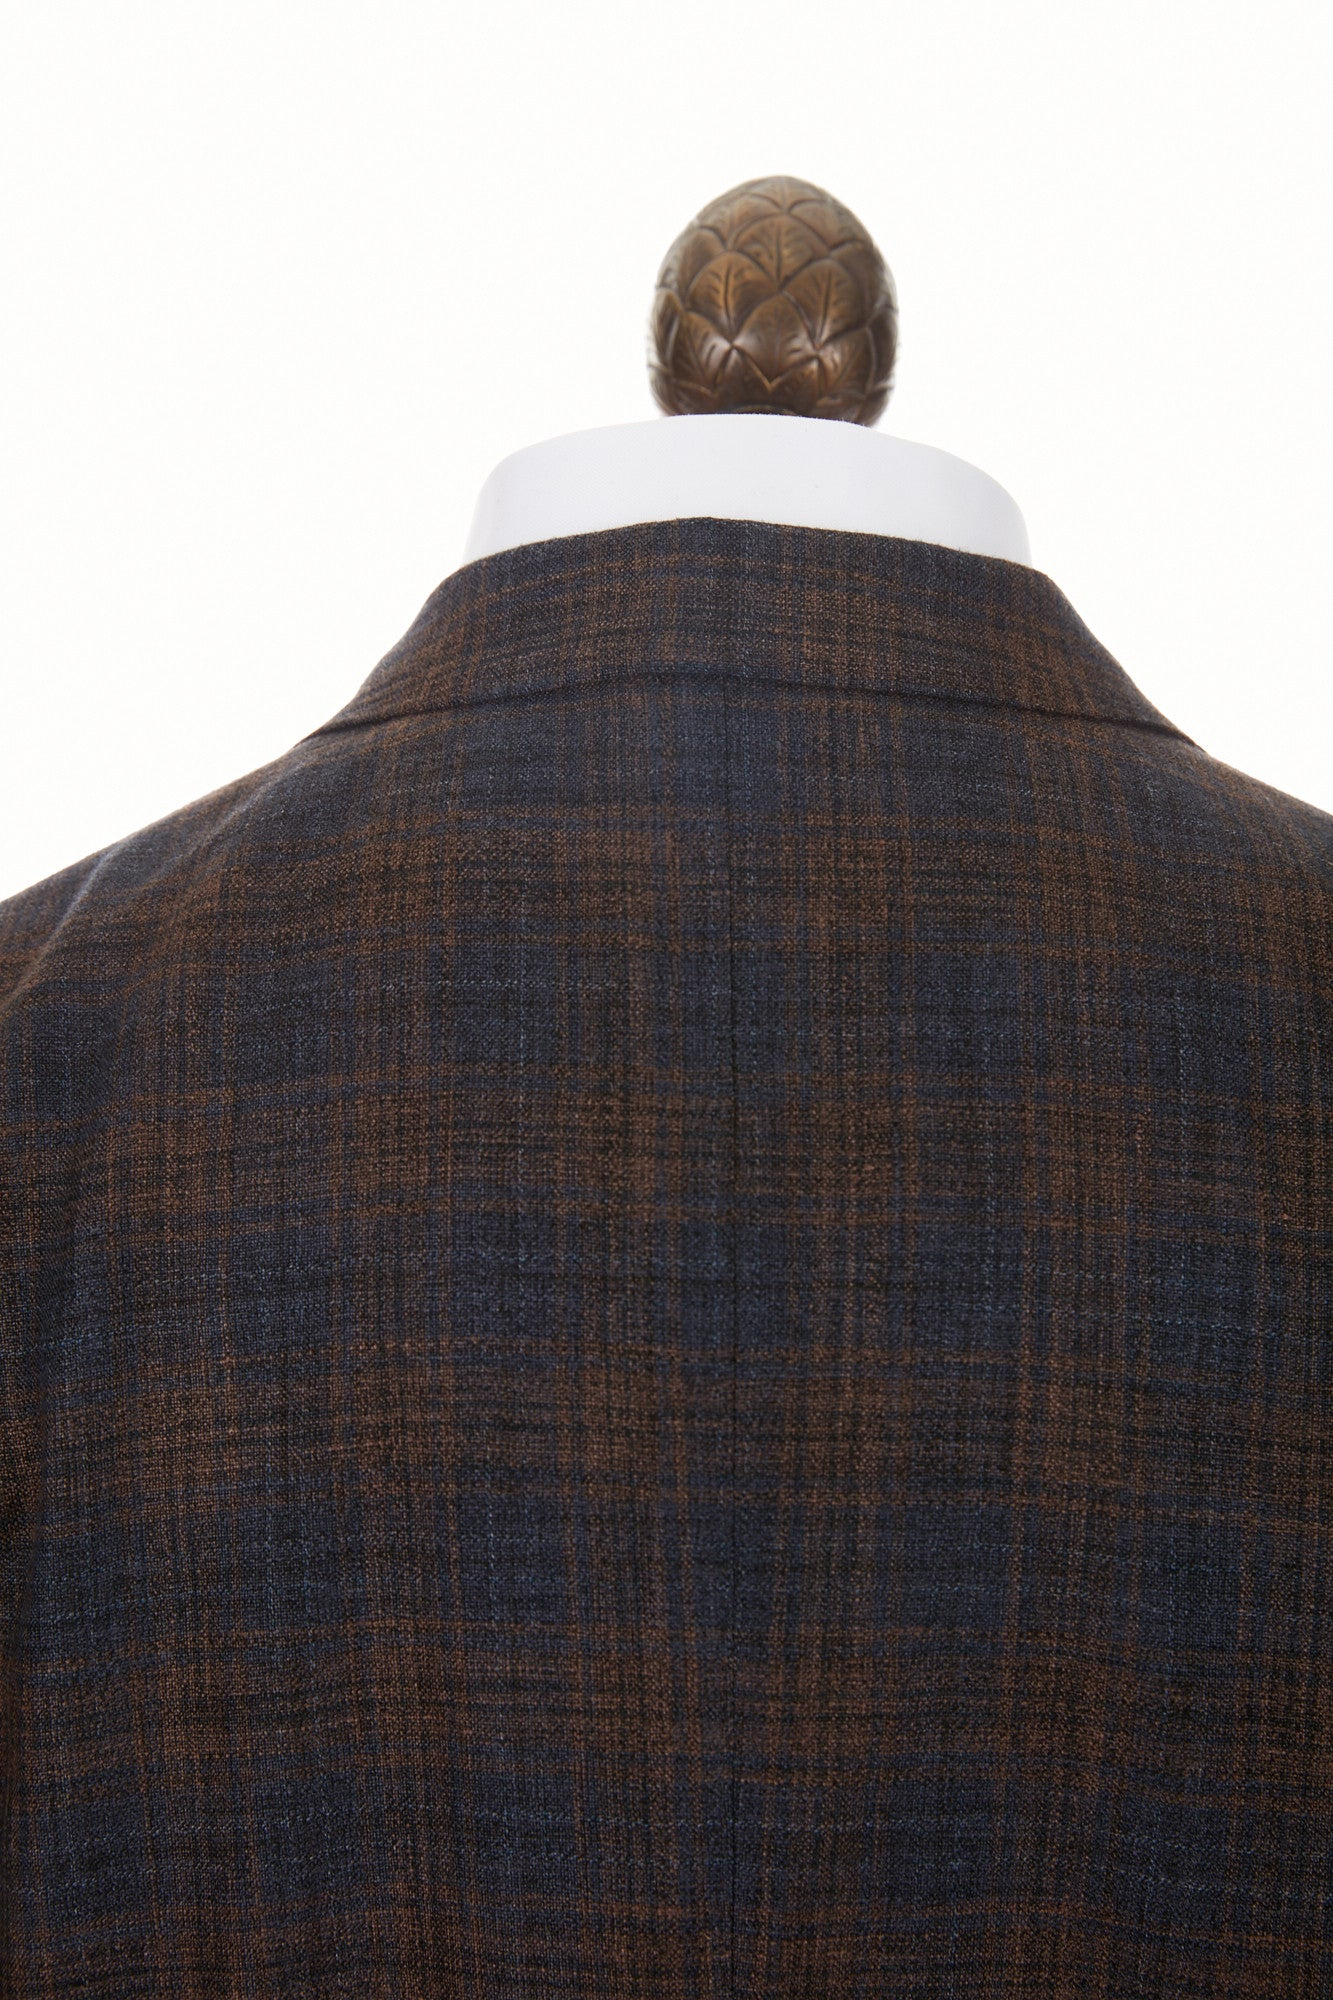 Boglioli 'K-Jacket' Brown & Navy Check Sport Jacket - Blazer, Sport Coat -collar